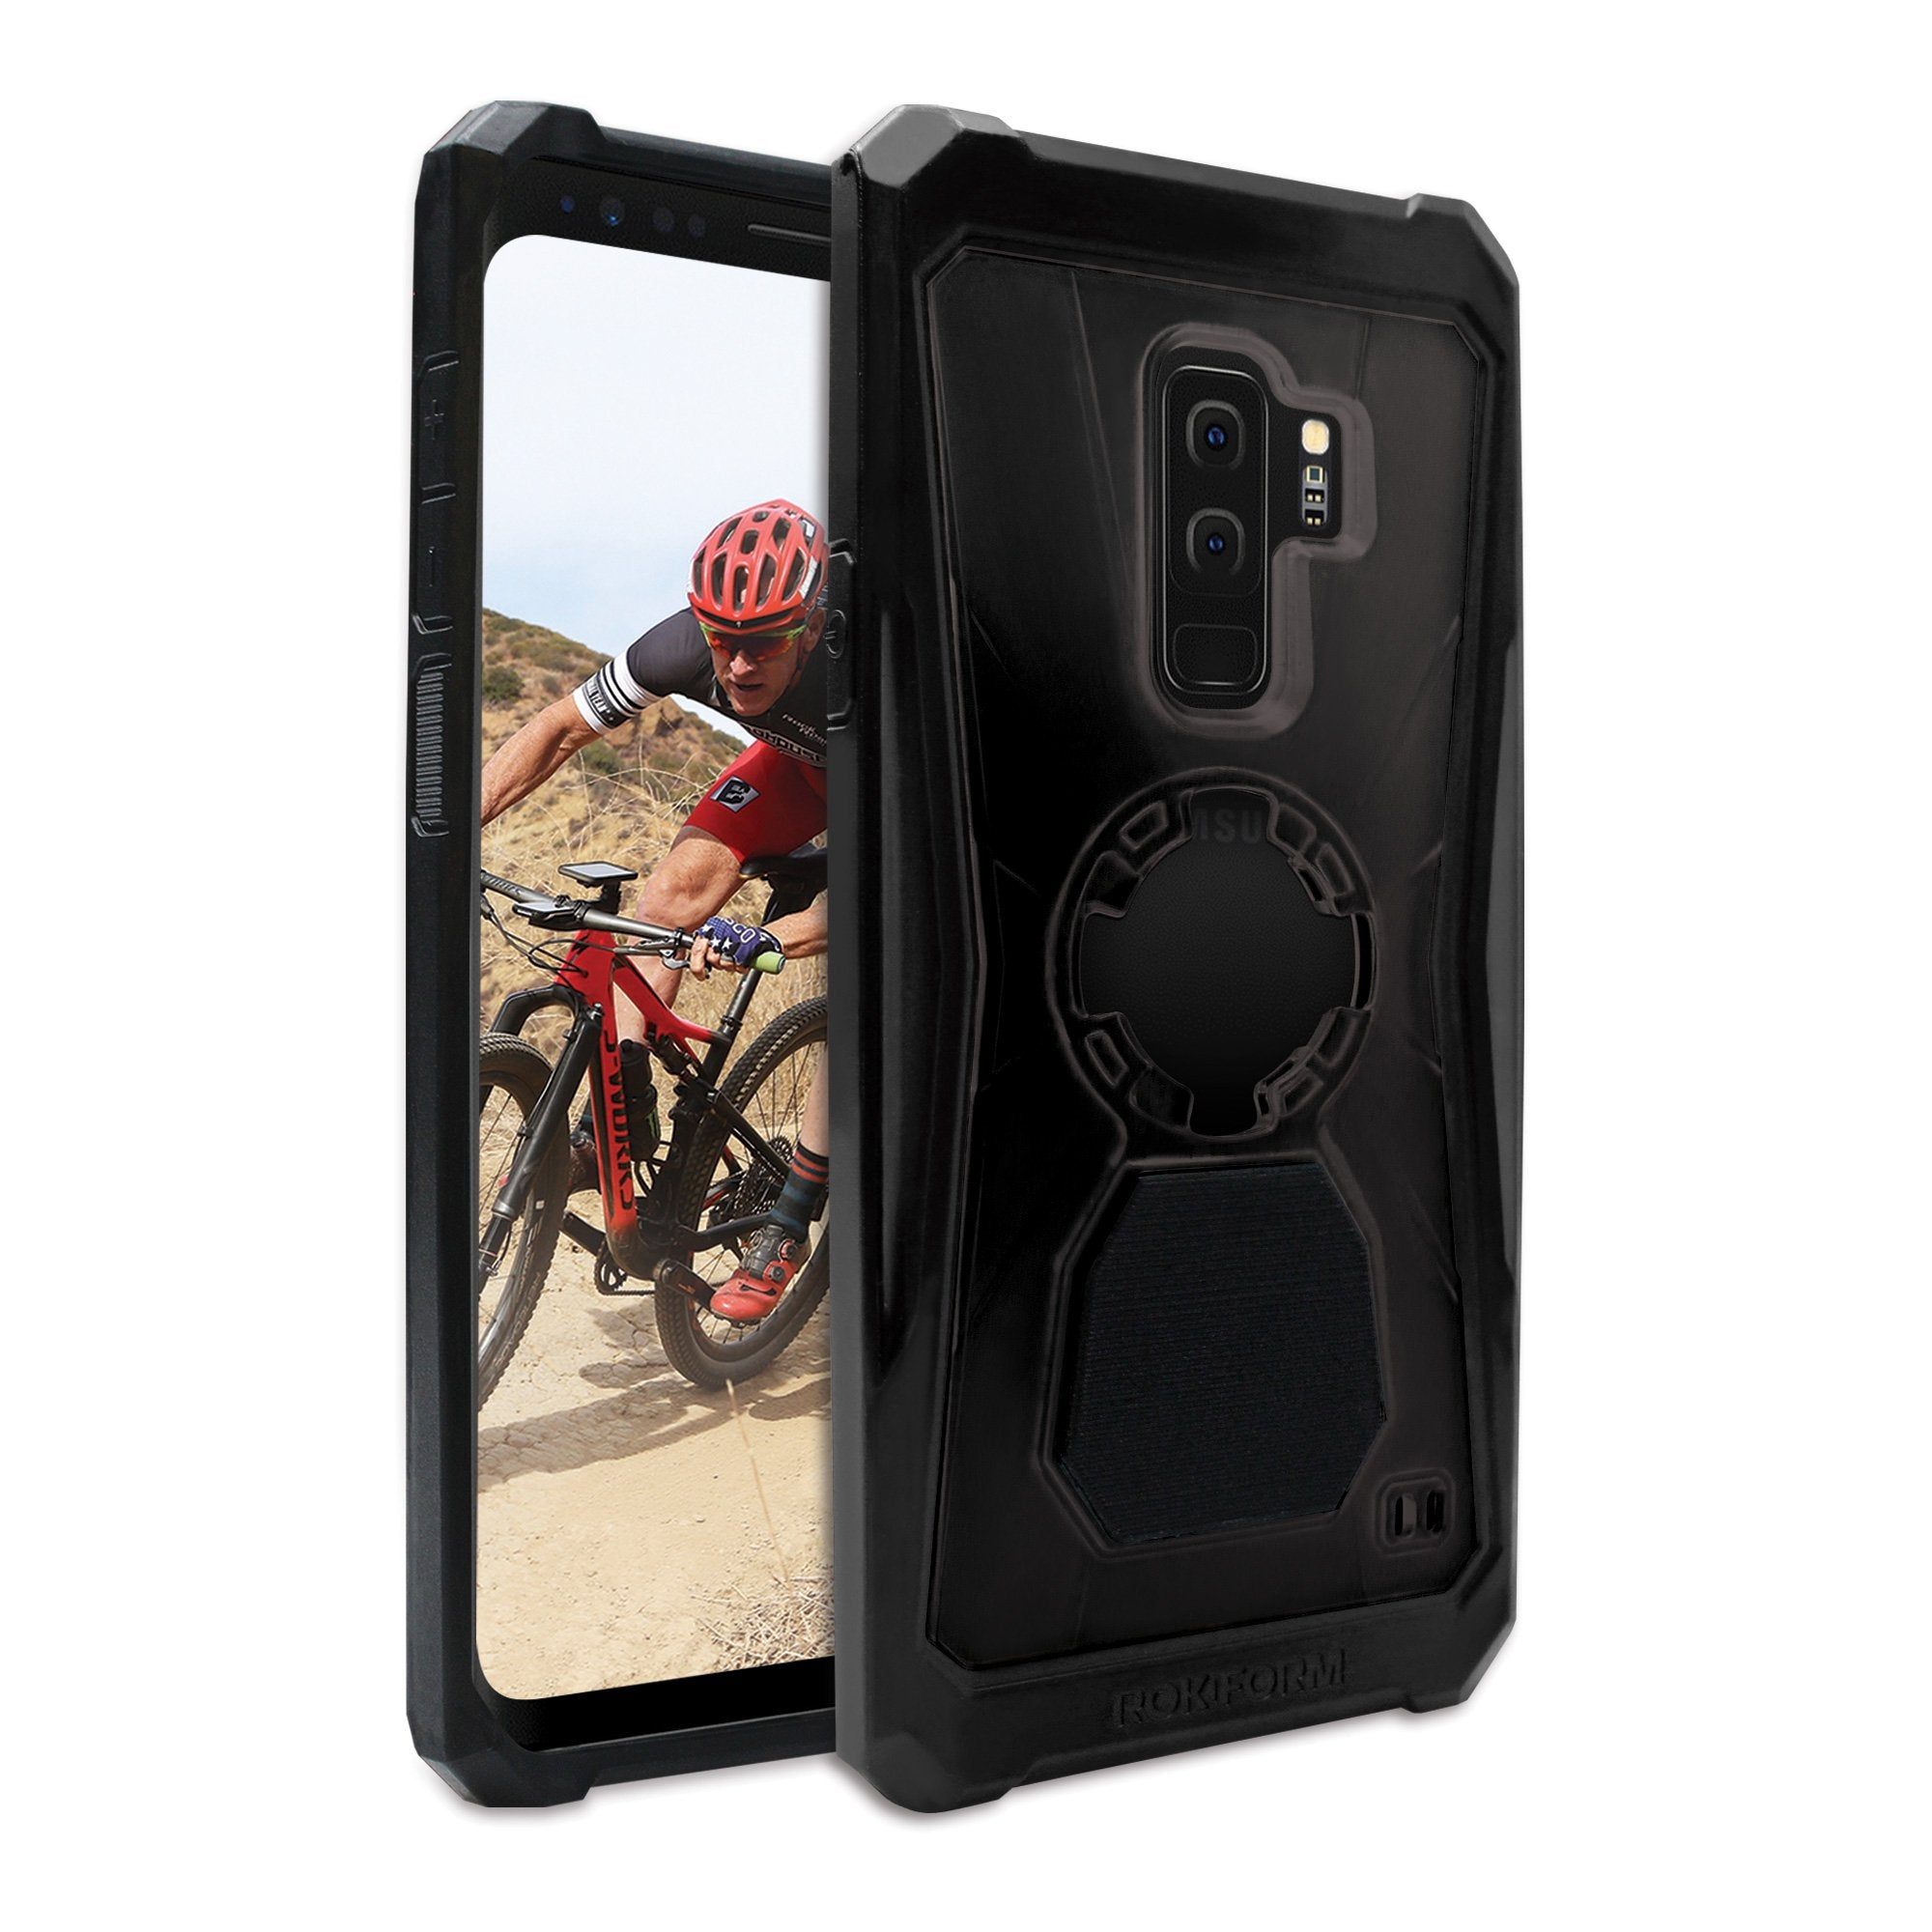 t launches att phone samsung intomobile rug sgh rugged at candybar front